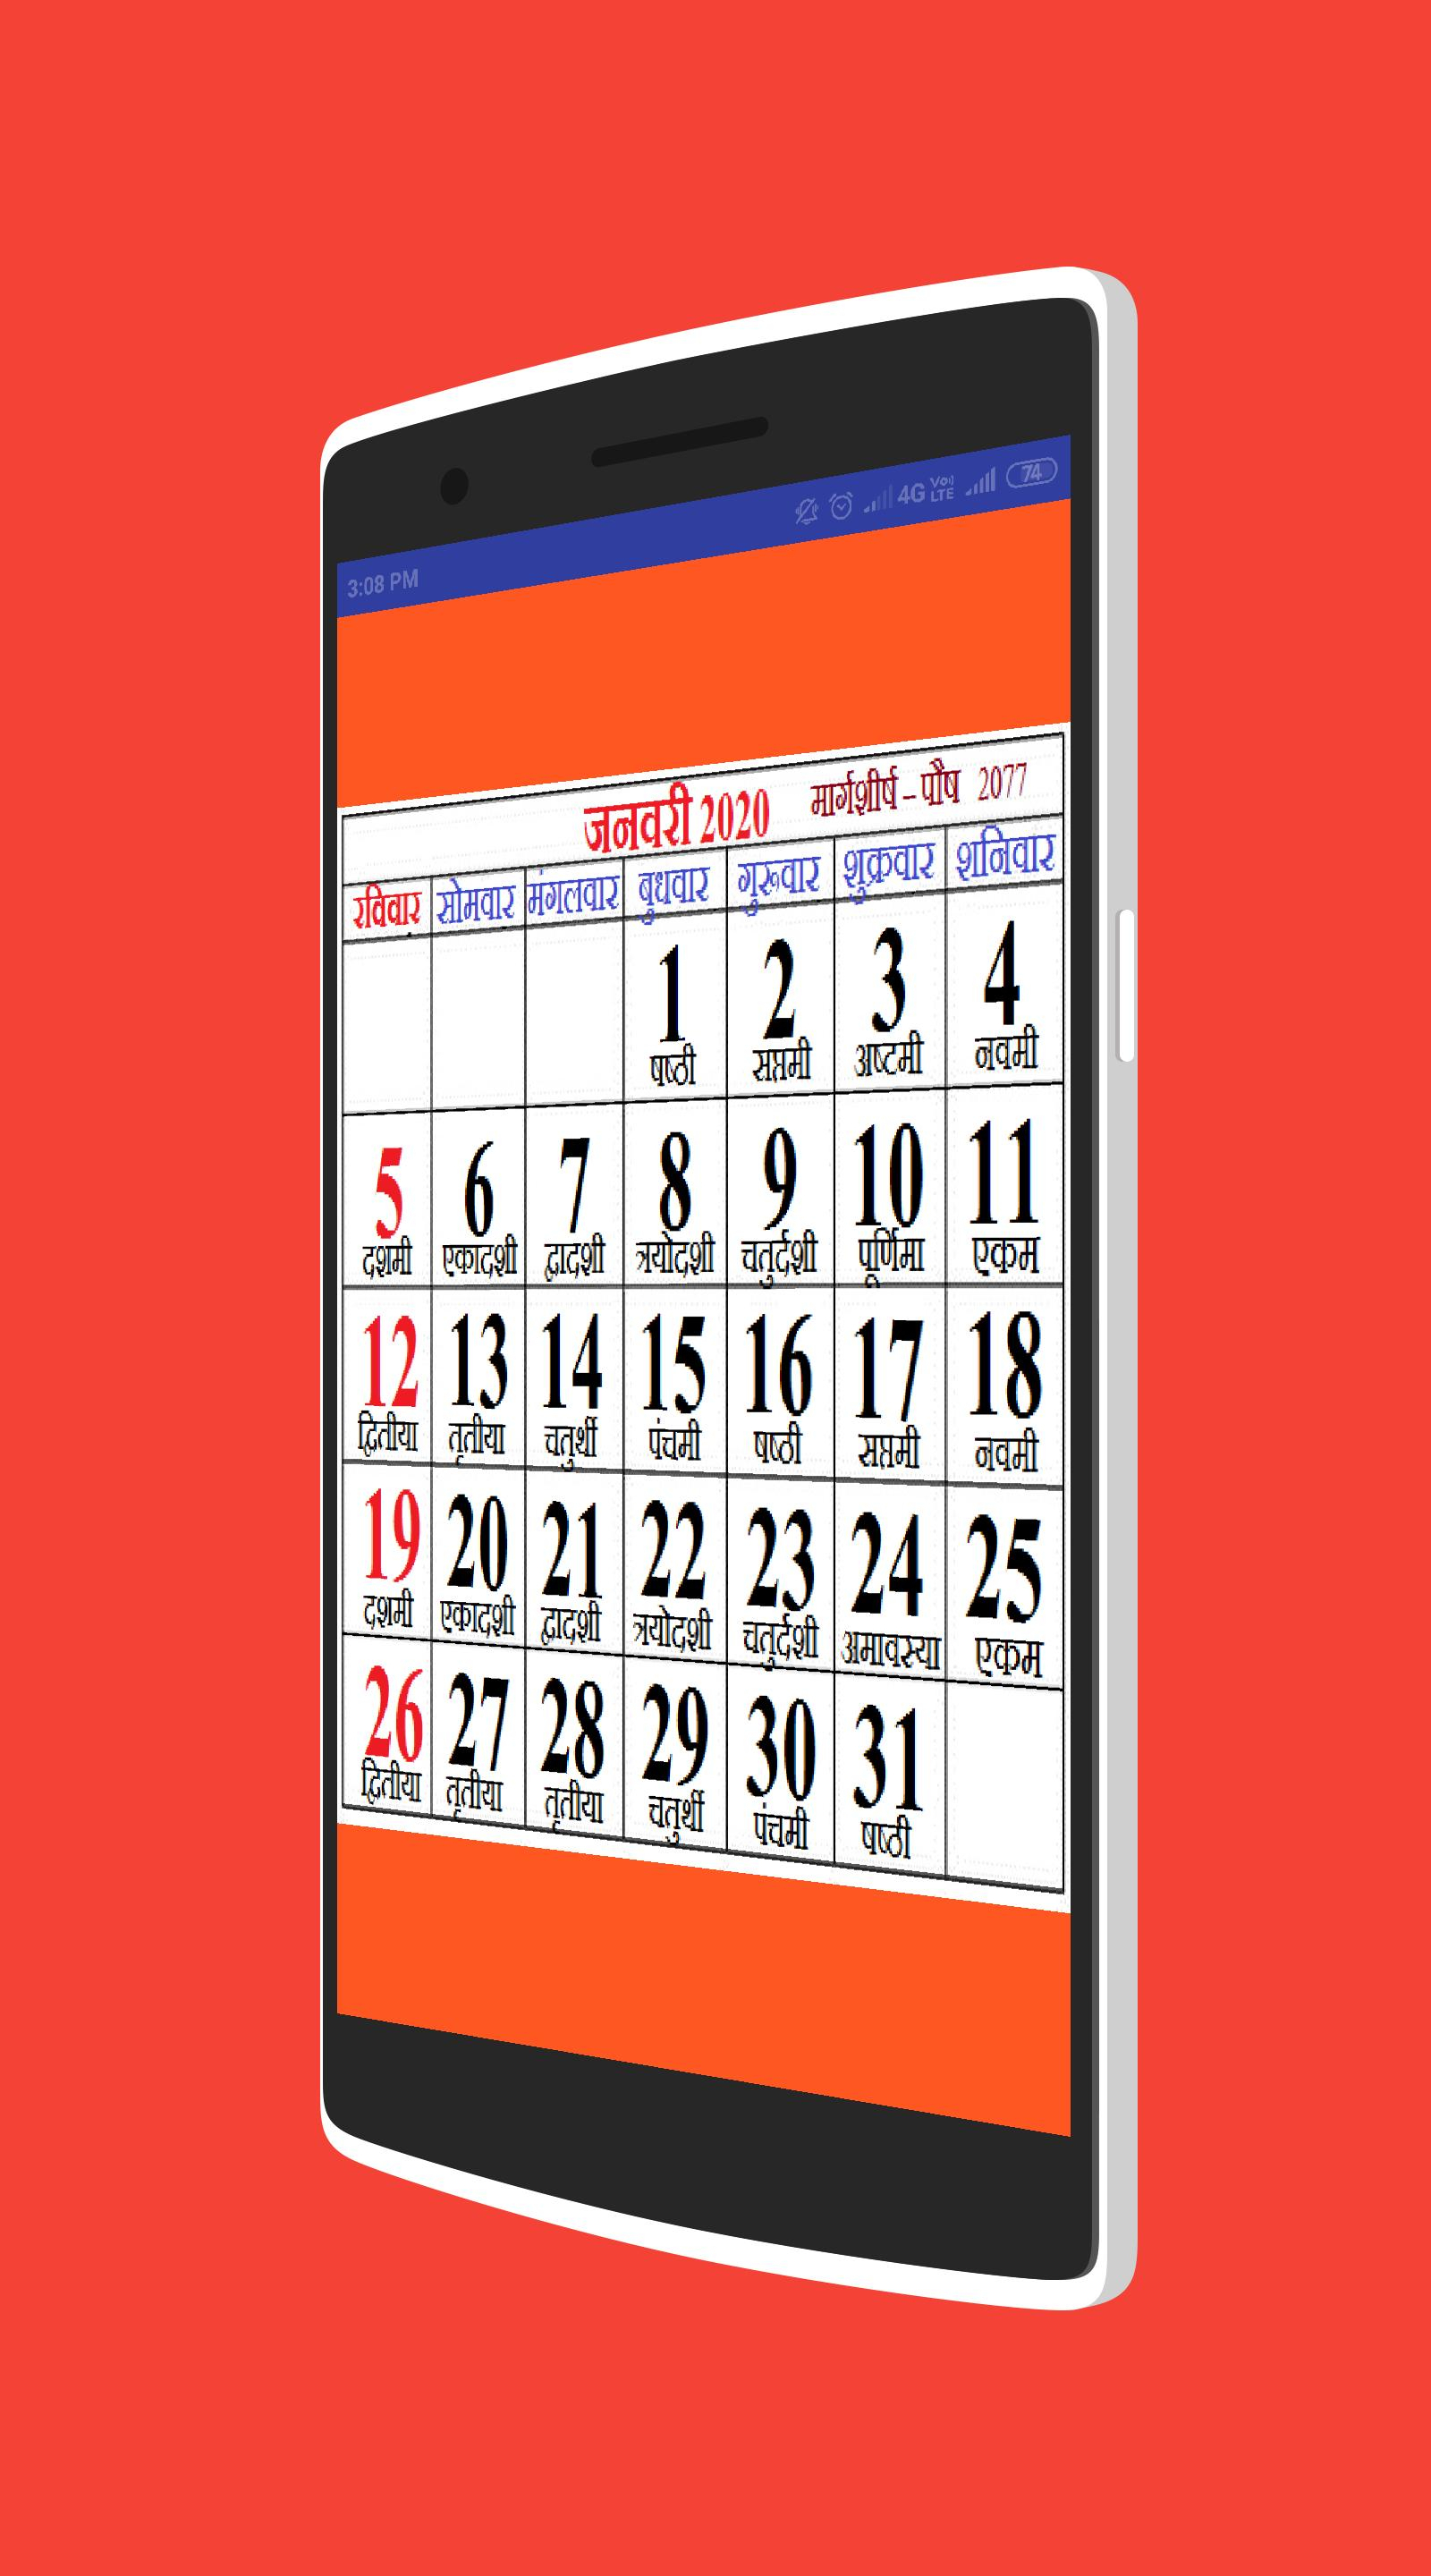 2020 Calendar - 2020 Panchang, 2020 कैलेंडर For Android - Apk